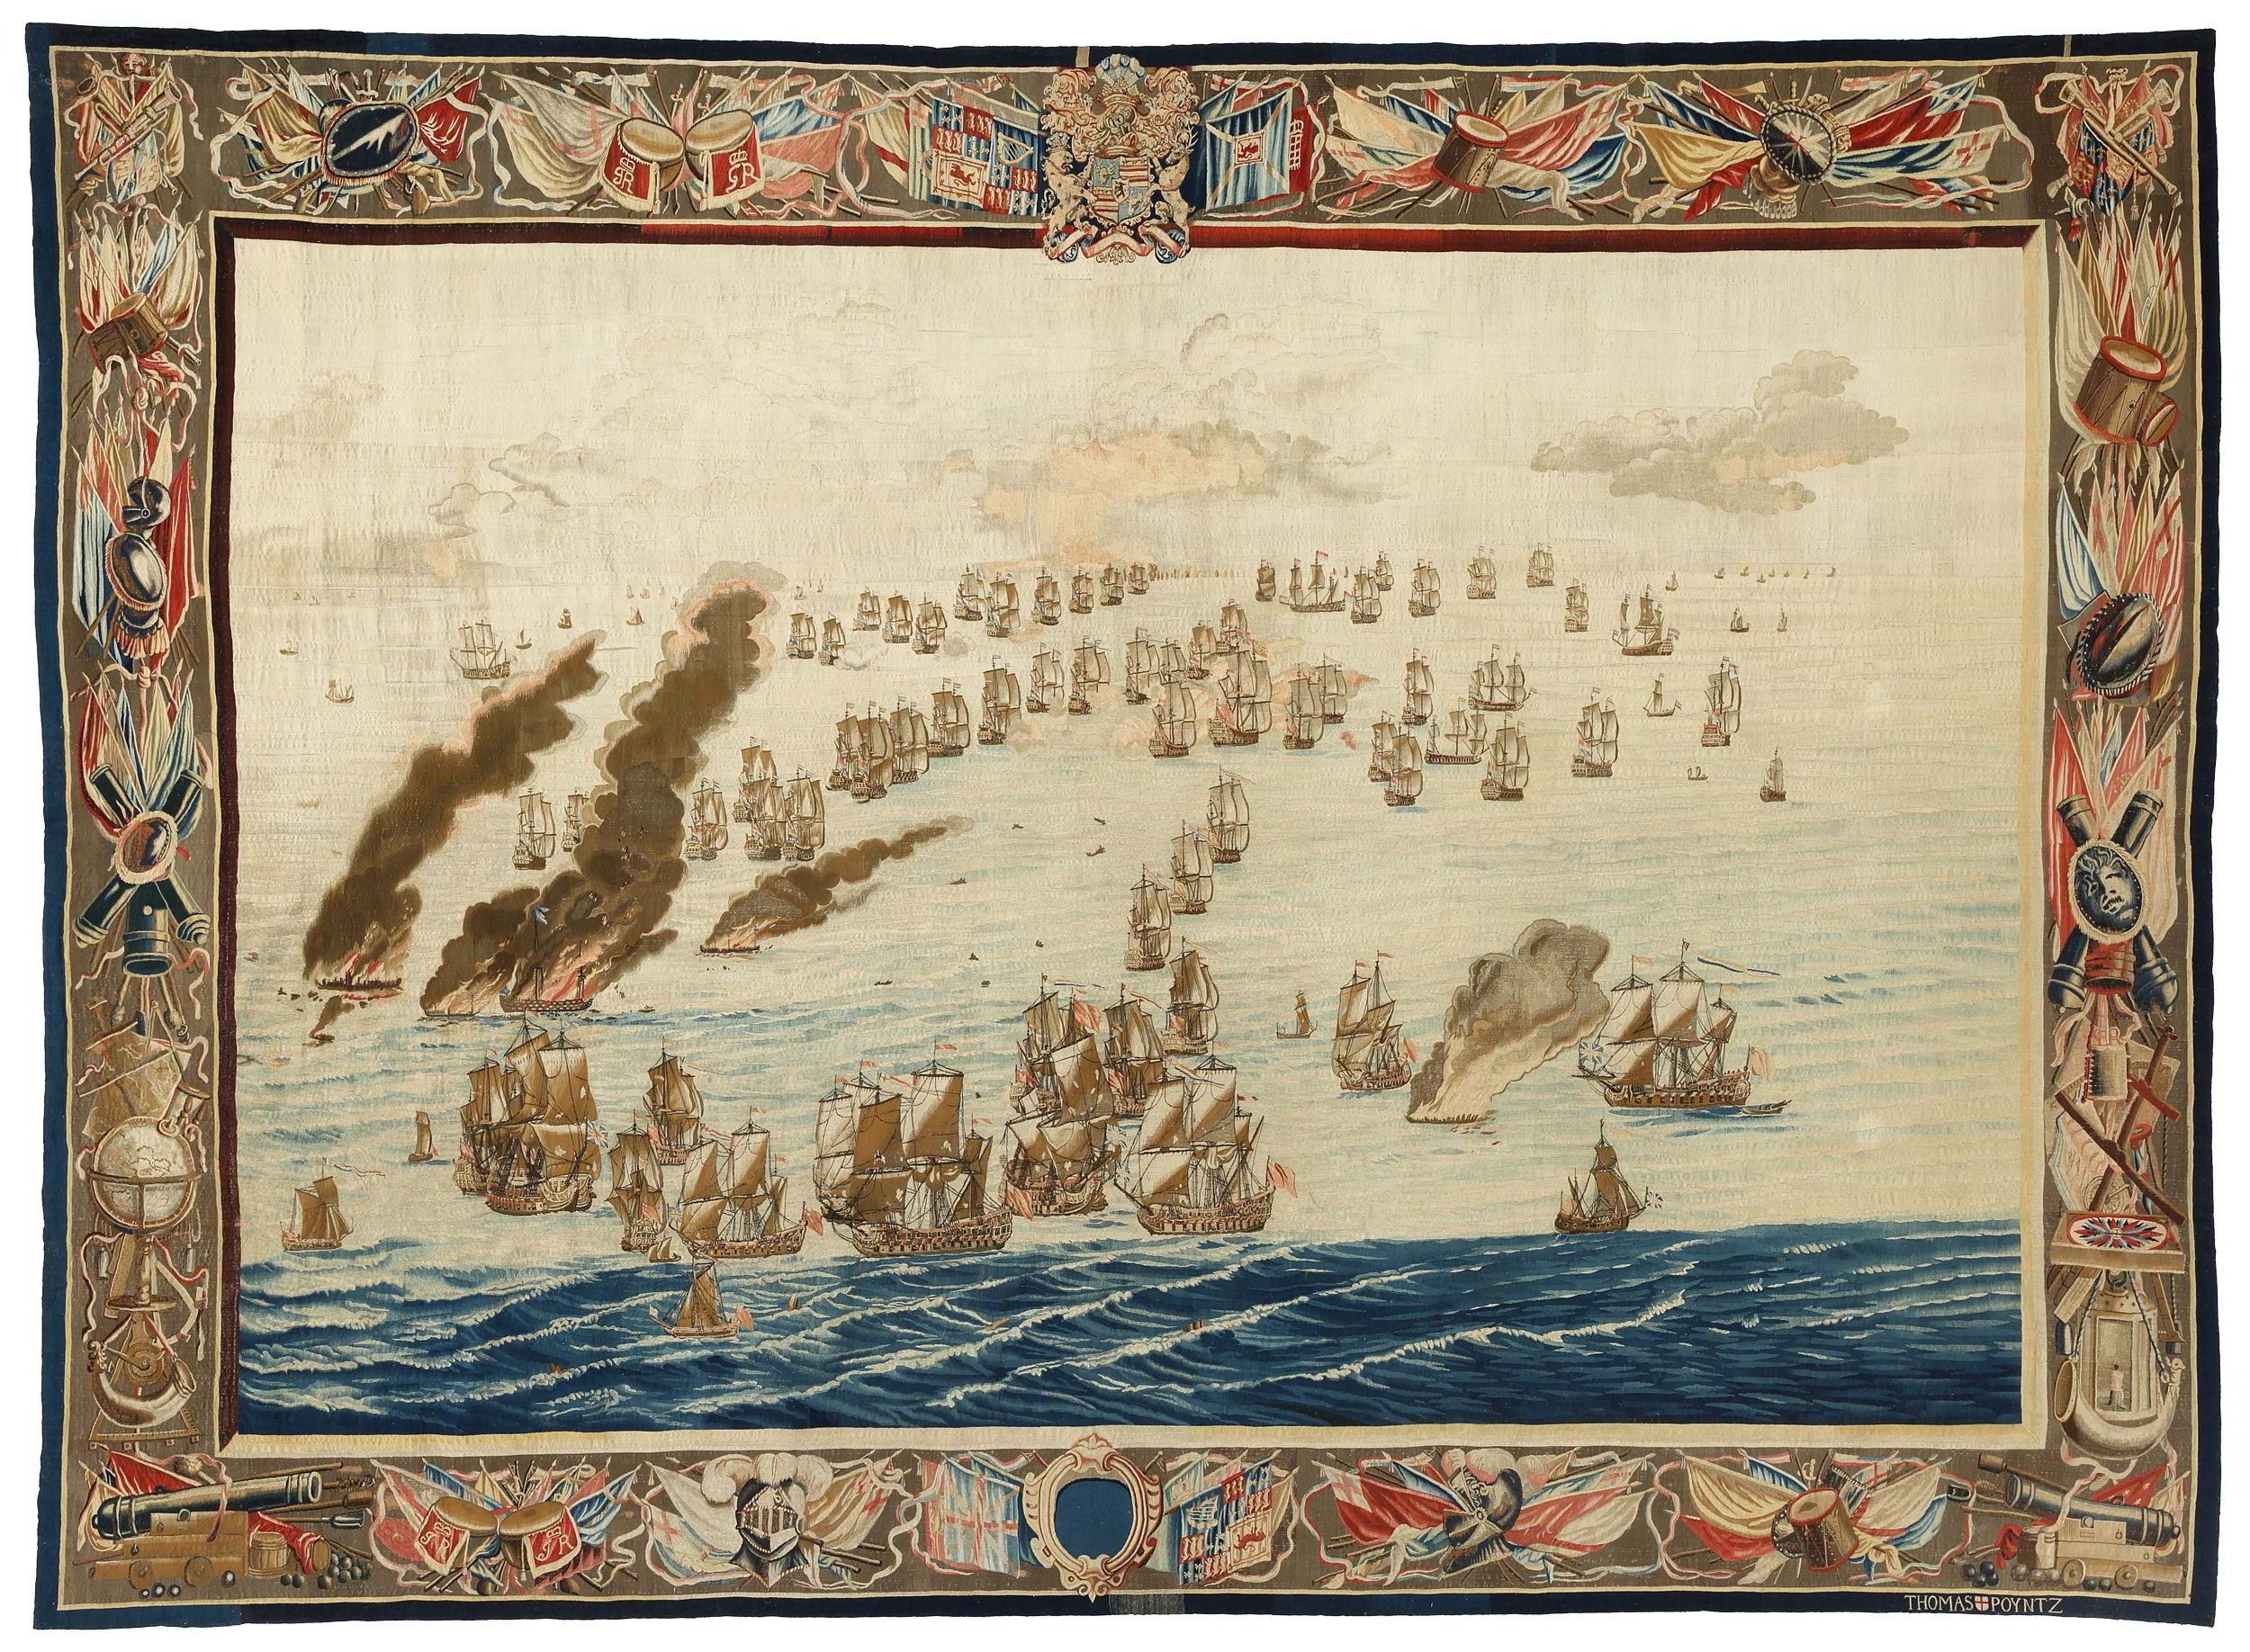 Designed by Willem van de Velde I (1611-1693),<em>The Burning of the Royal James (Later in the Day)</em>, after 1685 National Maritime Museum, Amsterdam